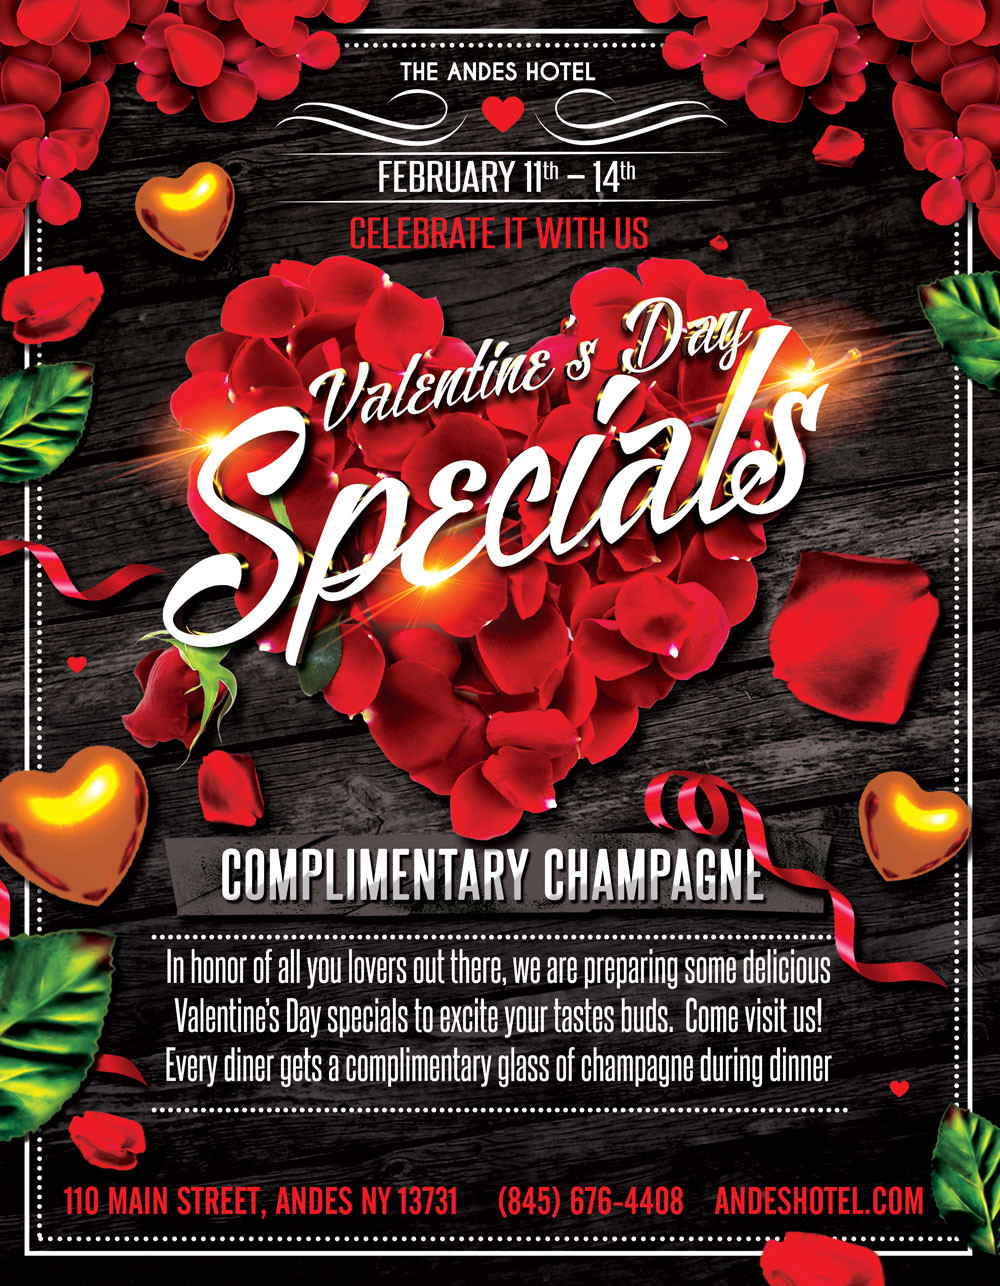 Valentine'S Day Dinner Specials  VALENTINE'S DAY SPECIALS AND PLIMENTARY CHAMPAGNE